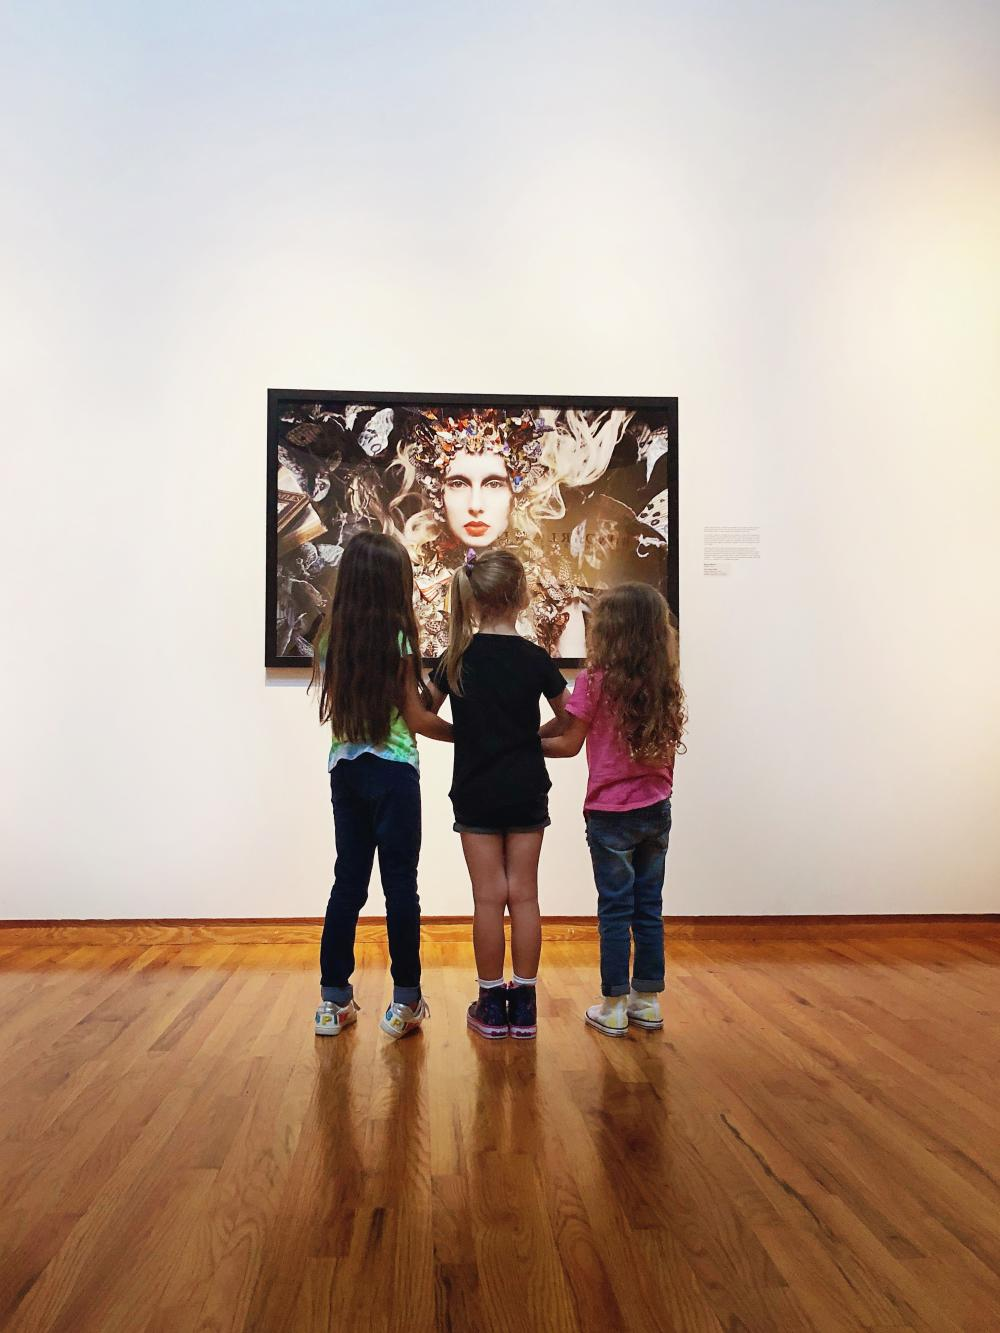 Three young girls browsing photography at the Fort Wayne Museum of Art